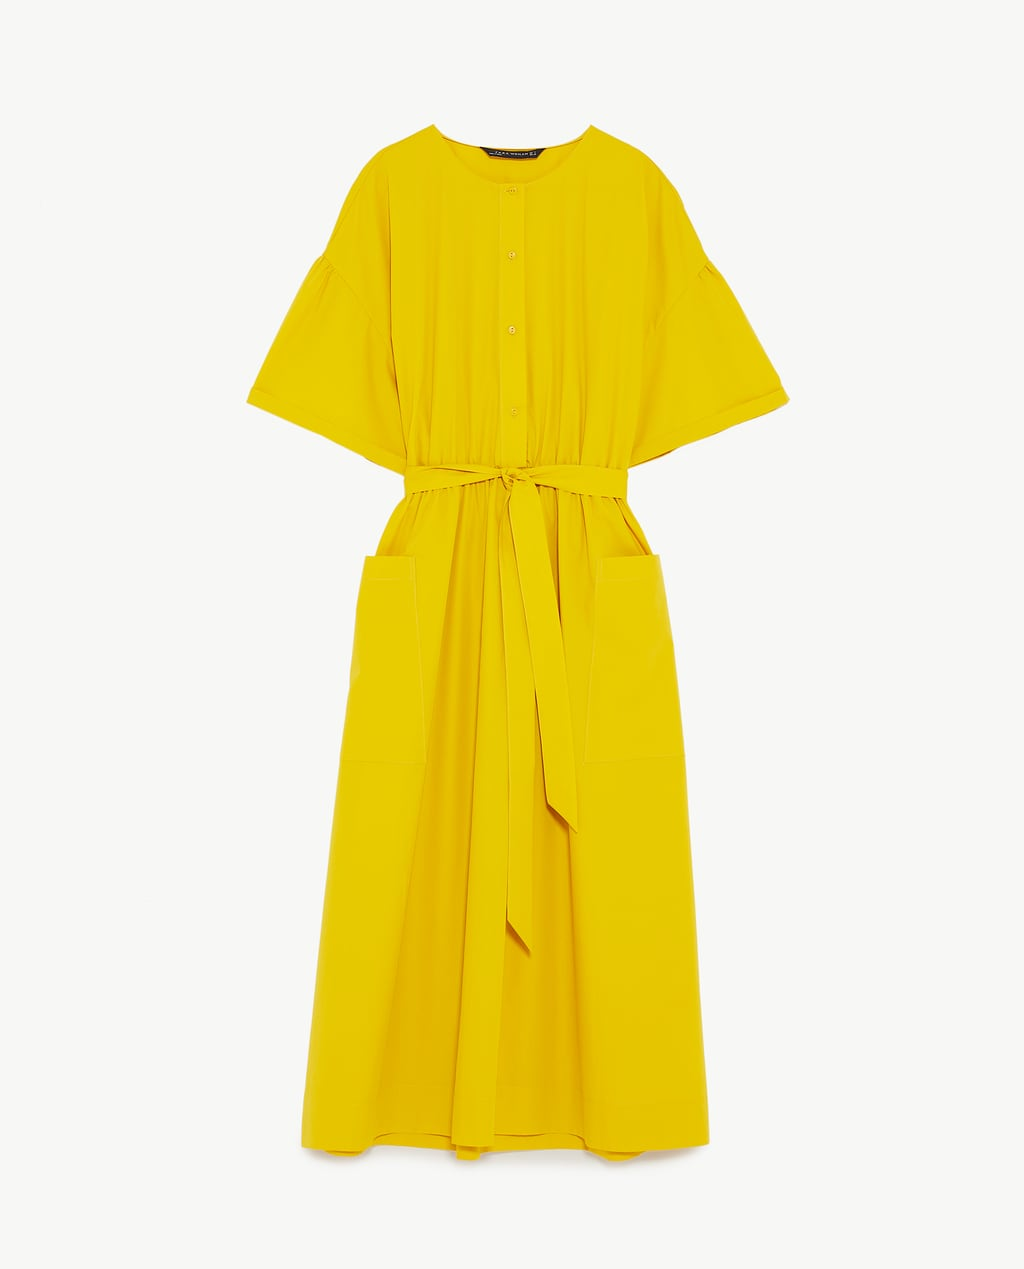 - Midi dress with round neckline and short turn-up sleeves. Elastic waist with tied belt detail. Wide A-line skirt with patch pockets on the front. Button fastening in the front.